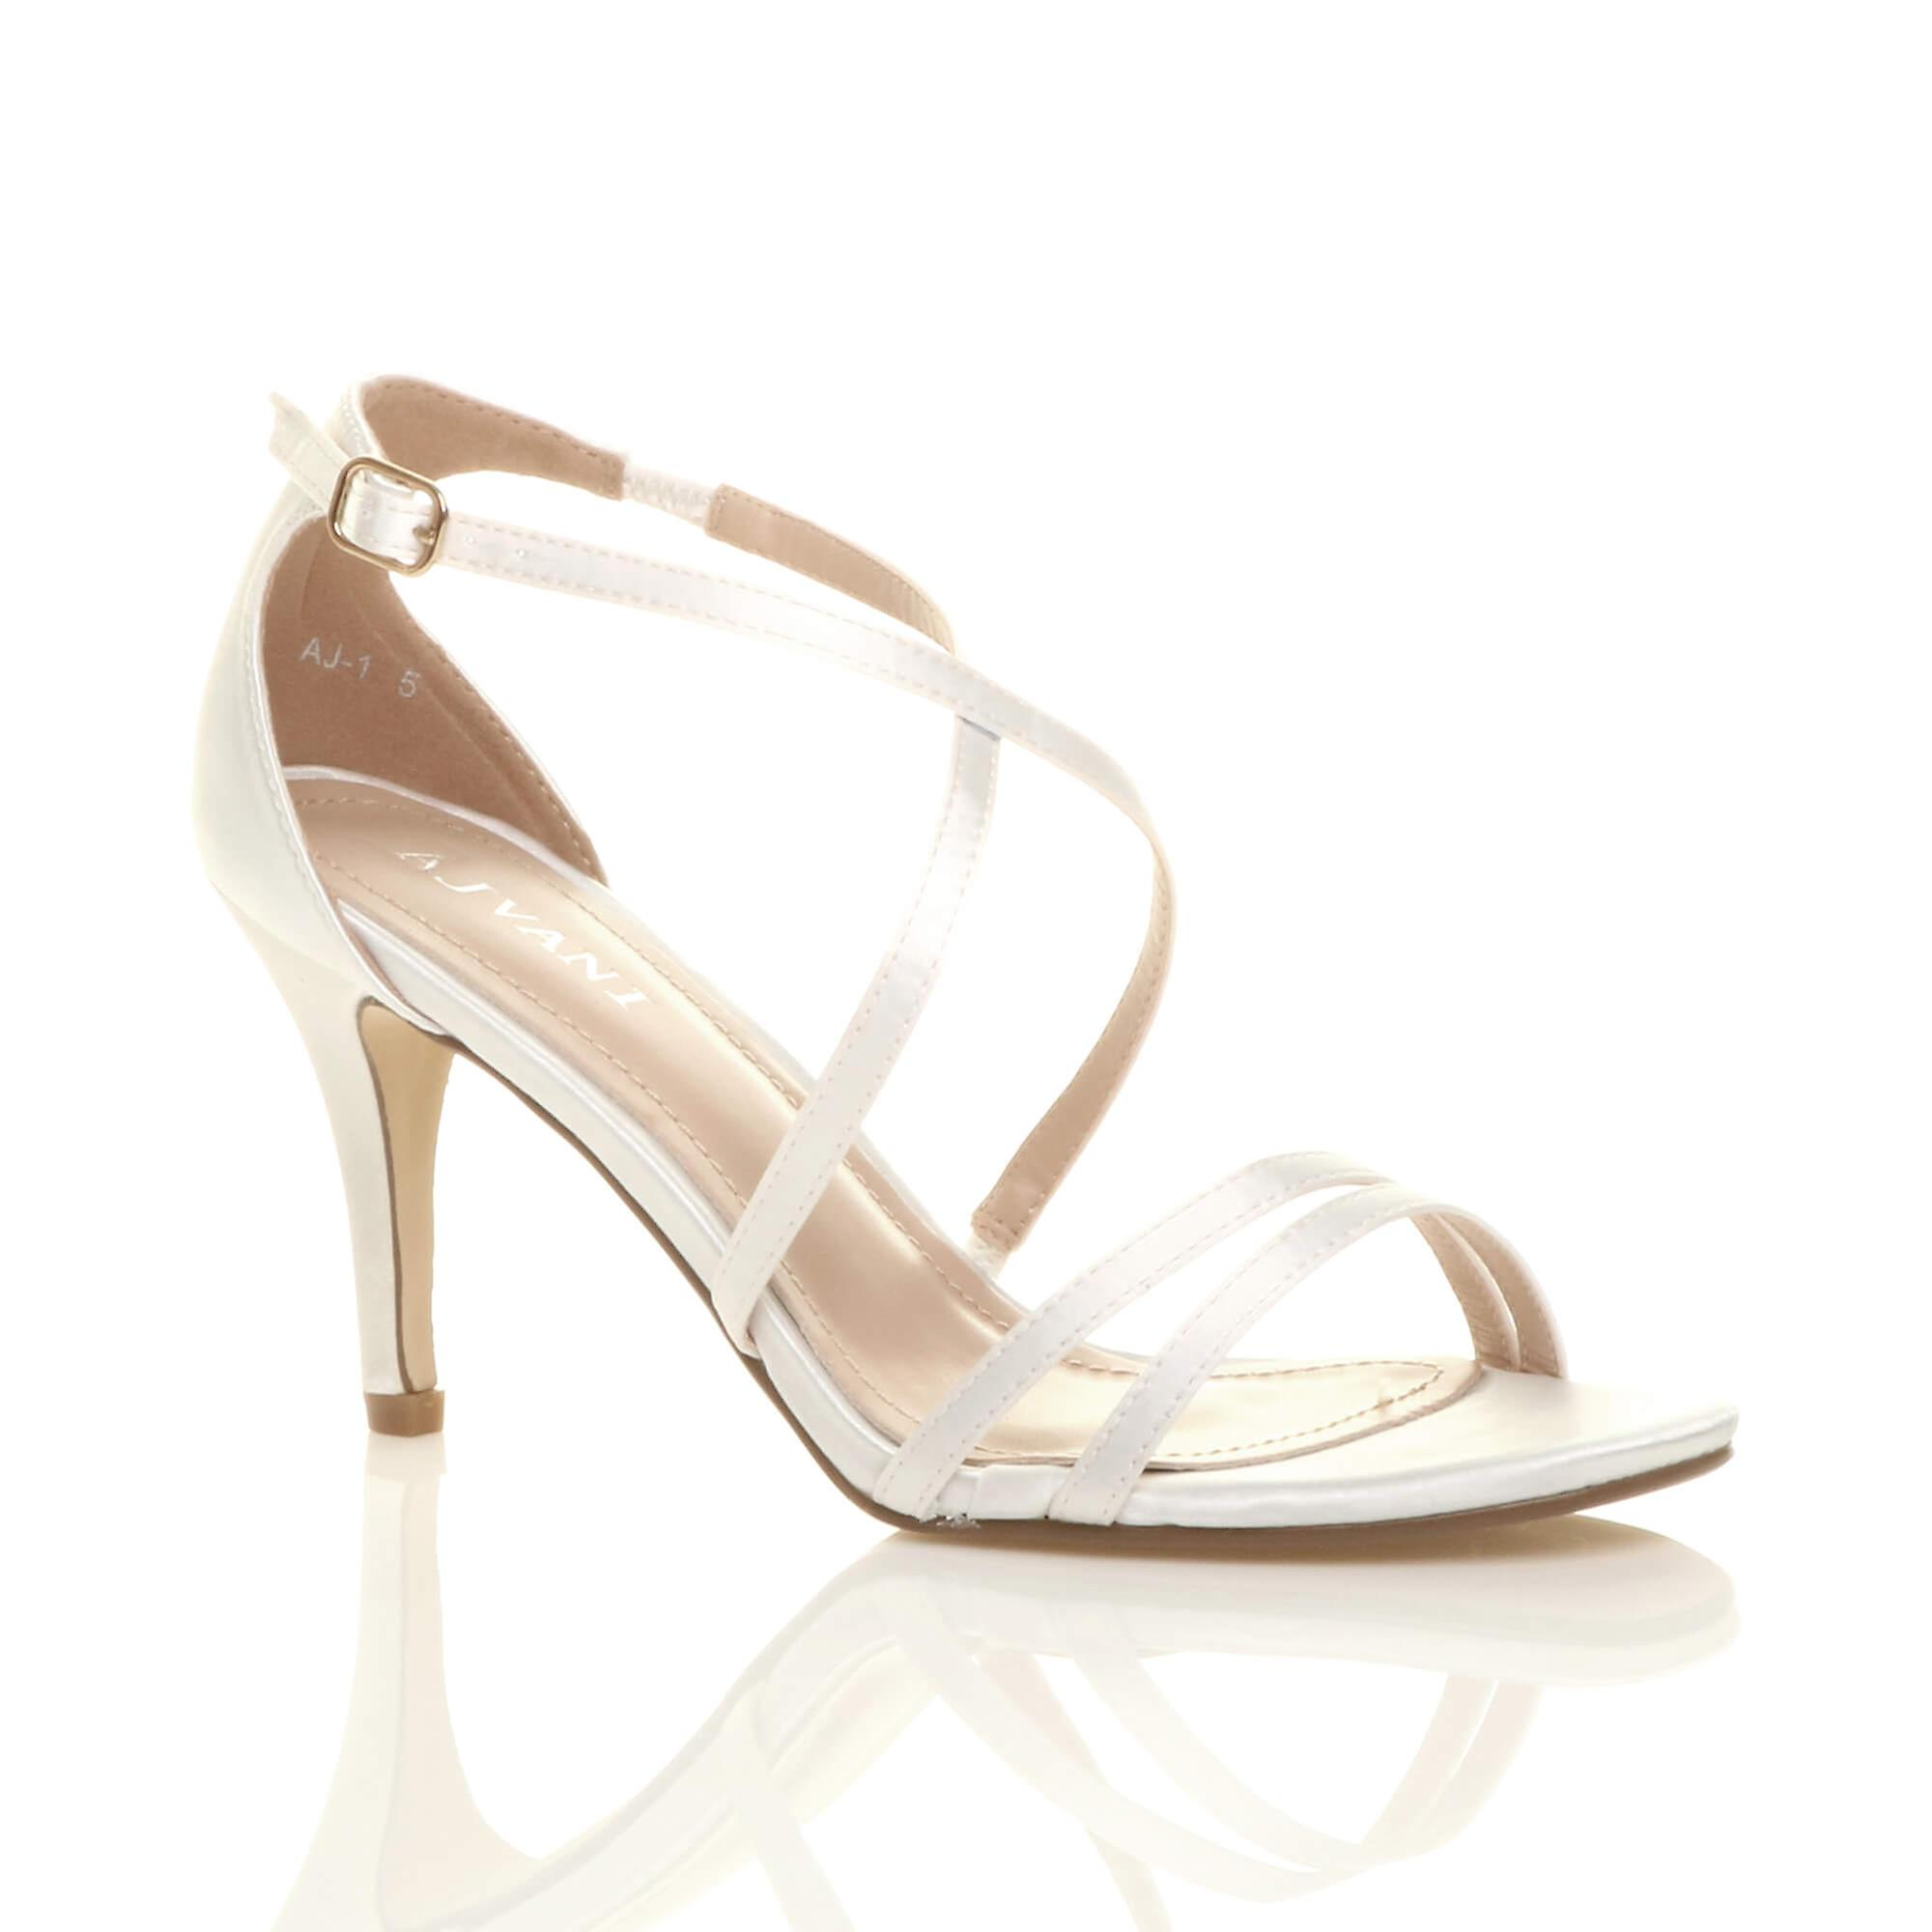 Ajvani womens mid low high heel strappy crossover shoes:Trend:Gentlemen/Ladies party wedding prom sandals shoes:Trend:Gentlemen/Ladies crossover fefd4f